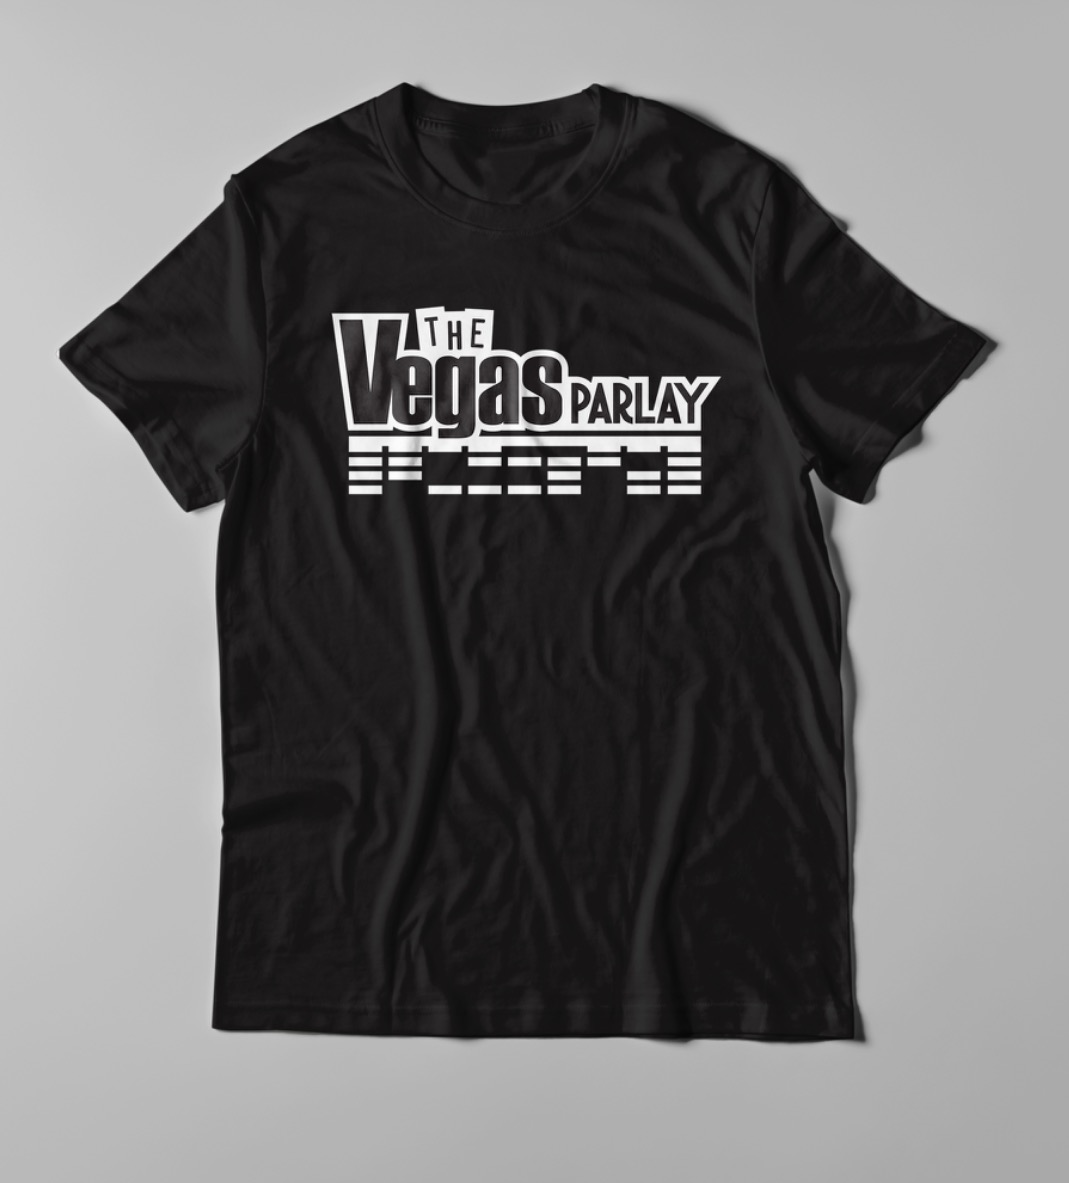 The Vegas Parlay Official Tee Shirt Will Bring Luck at the Sports Book!    Med thru XXL    ***** $20 + $5 shipping *****